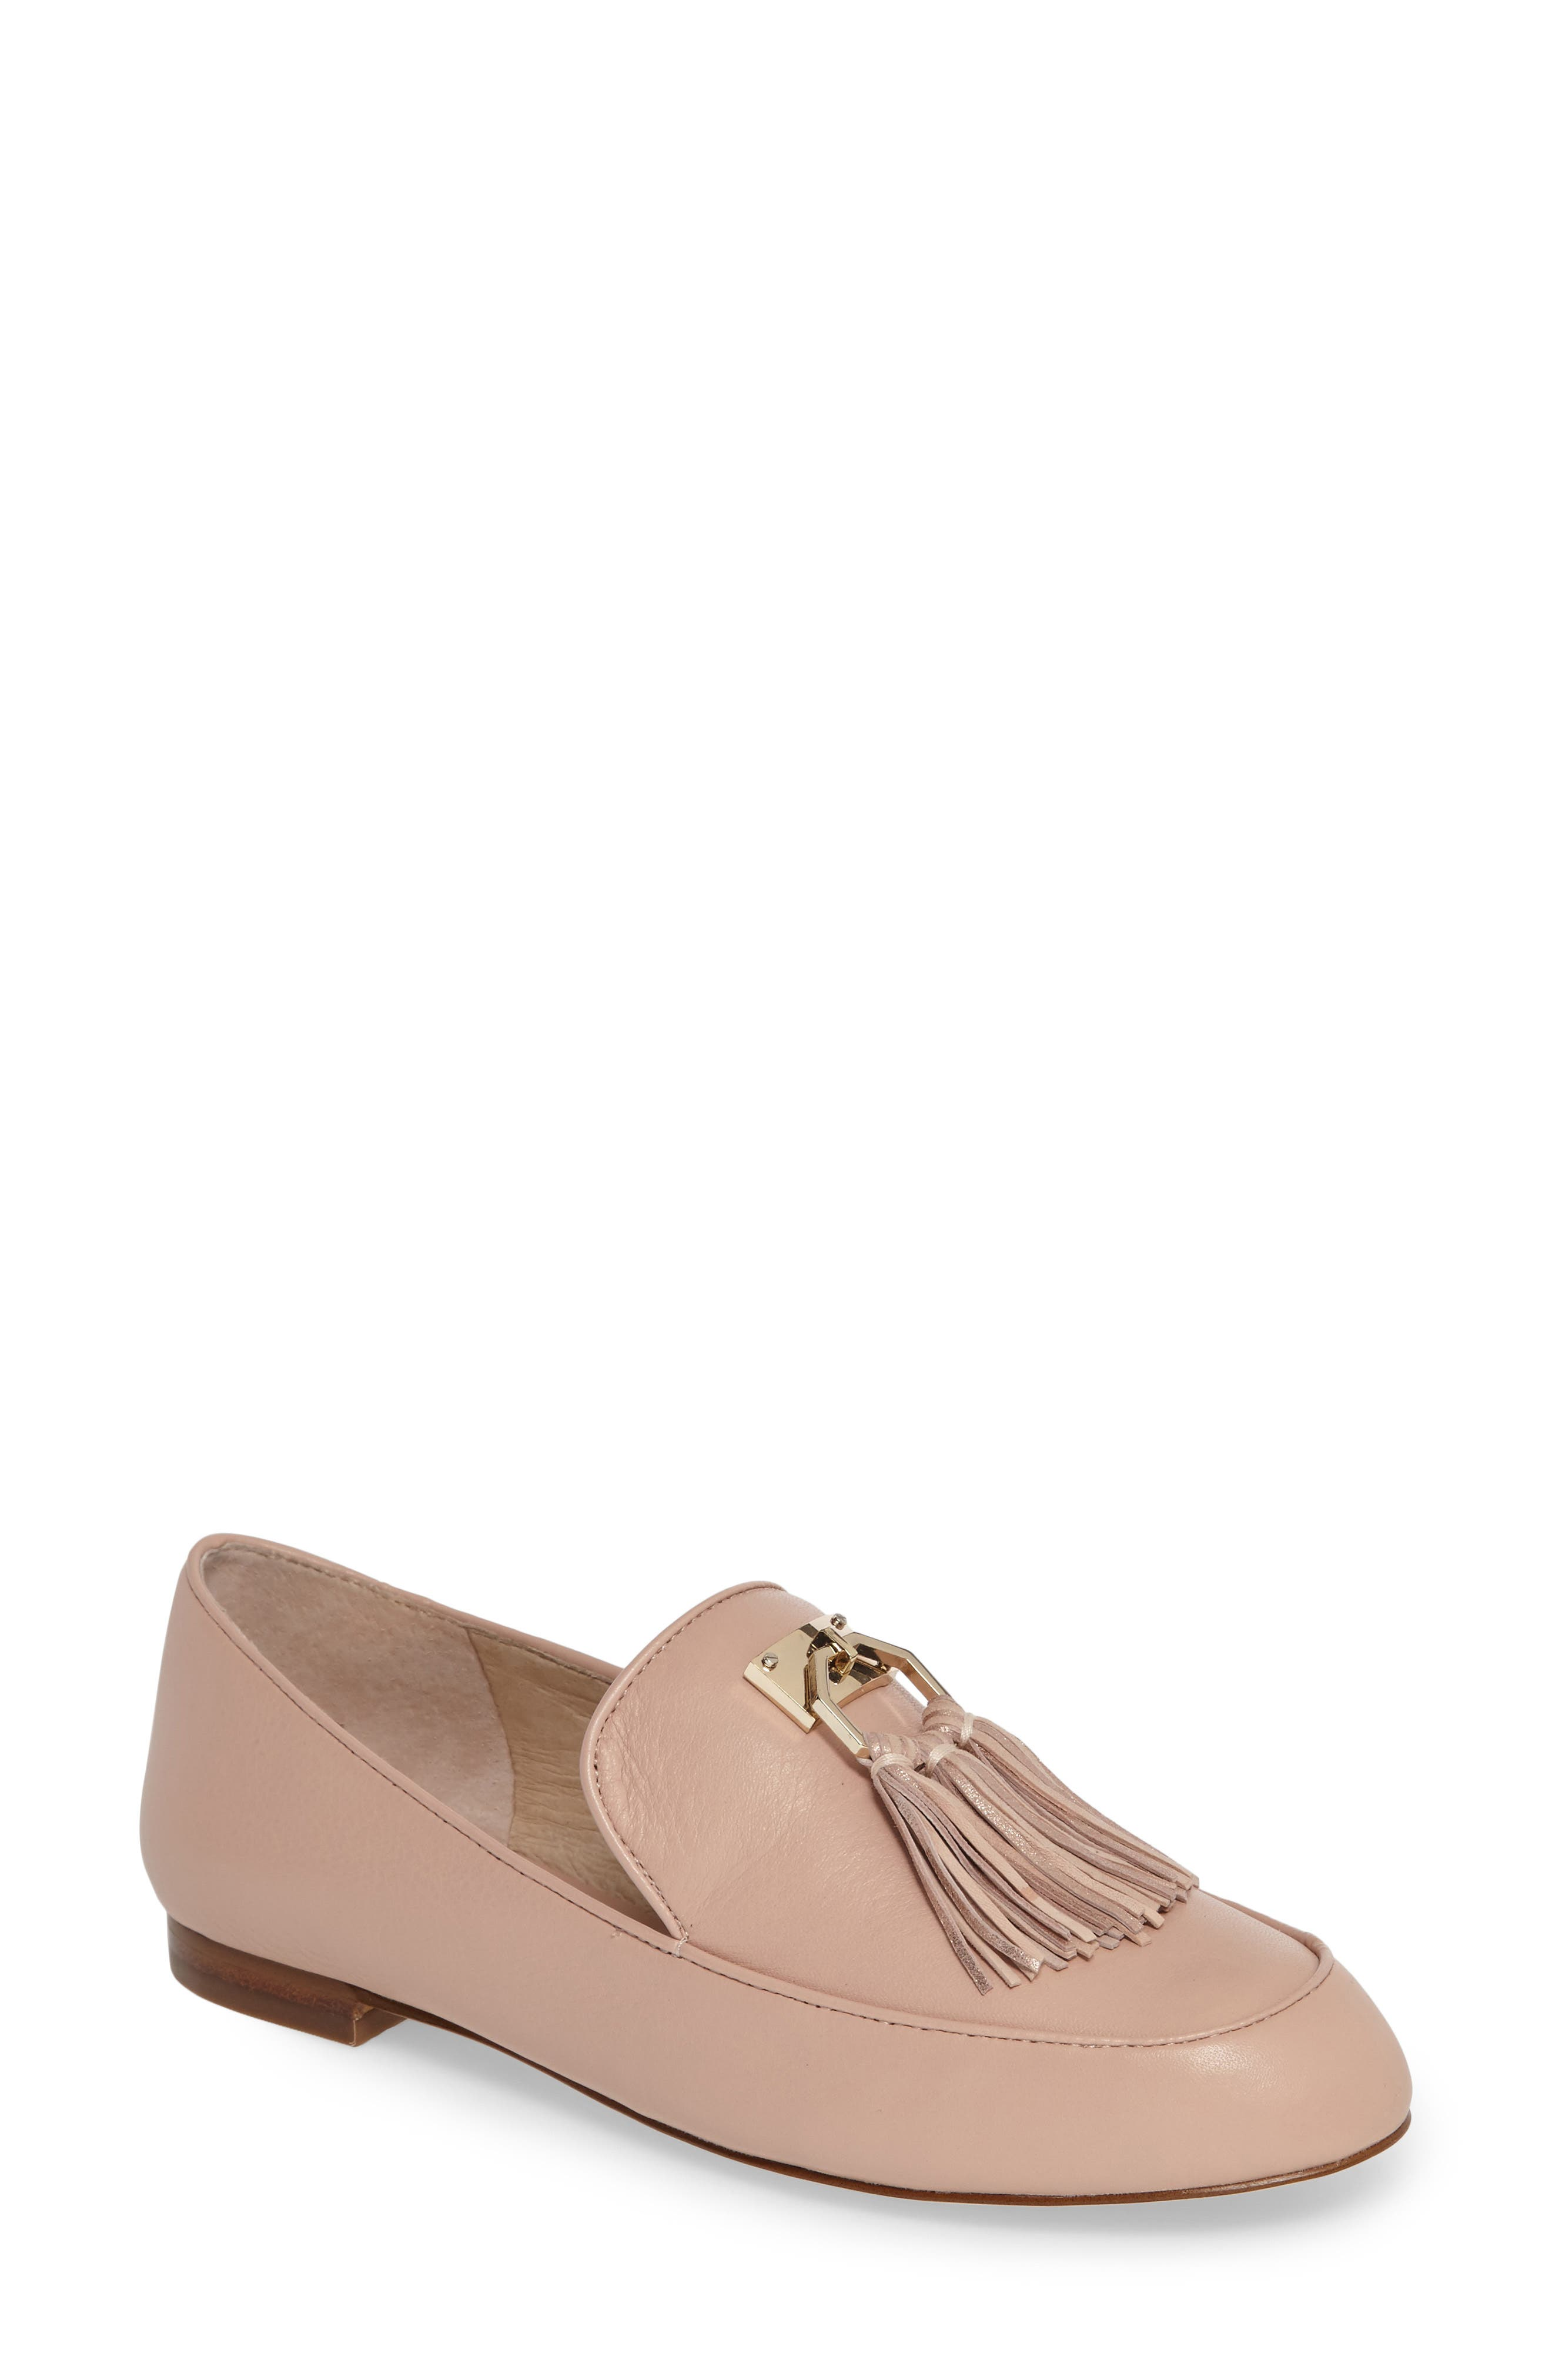 Louise et Cie Faru Tassel Loafer (Women)